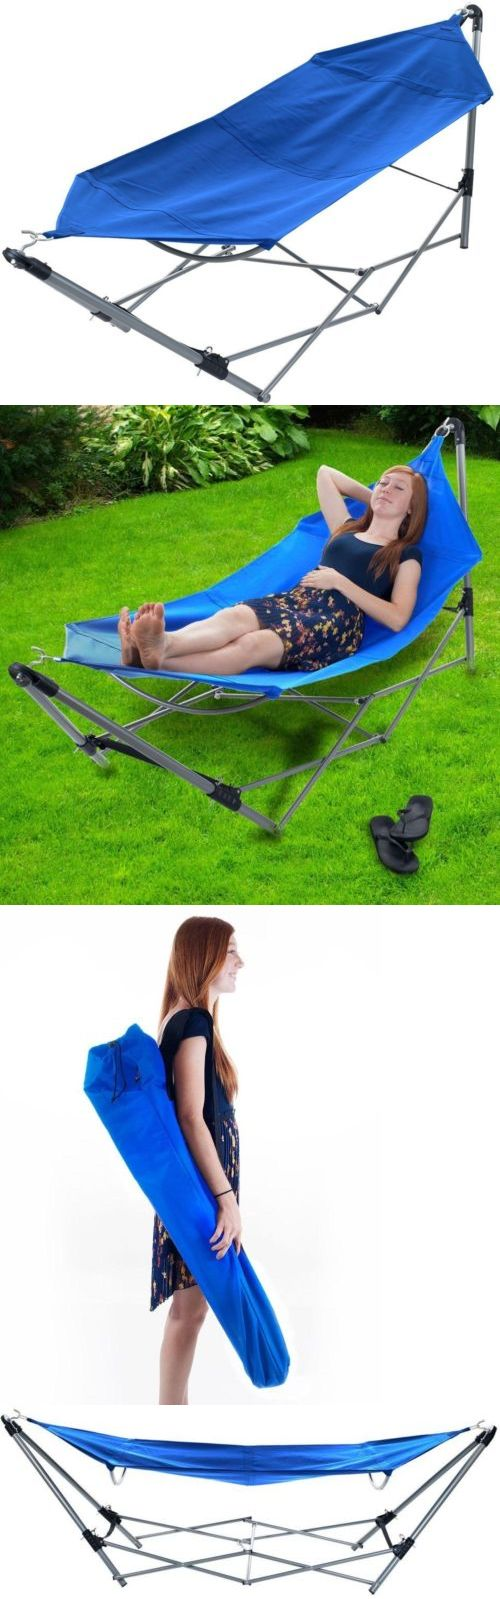 Hammocks 20719: Portable Hammock Frame Stand Carrying Bag Blue Camping Backyard Pool Foldable -> BUY IT NOW ONLY: $49.73 on eBay!